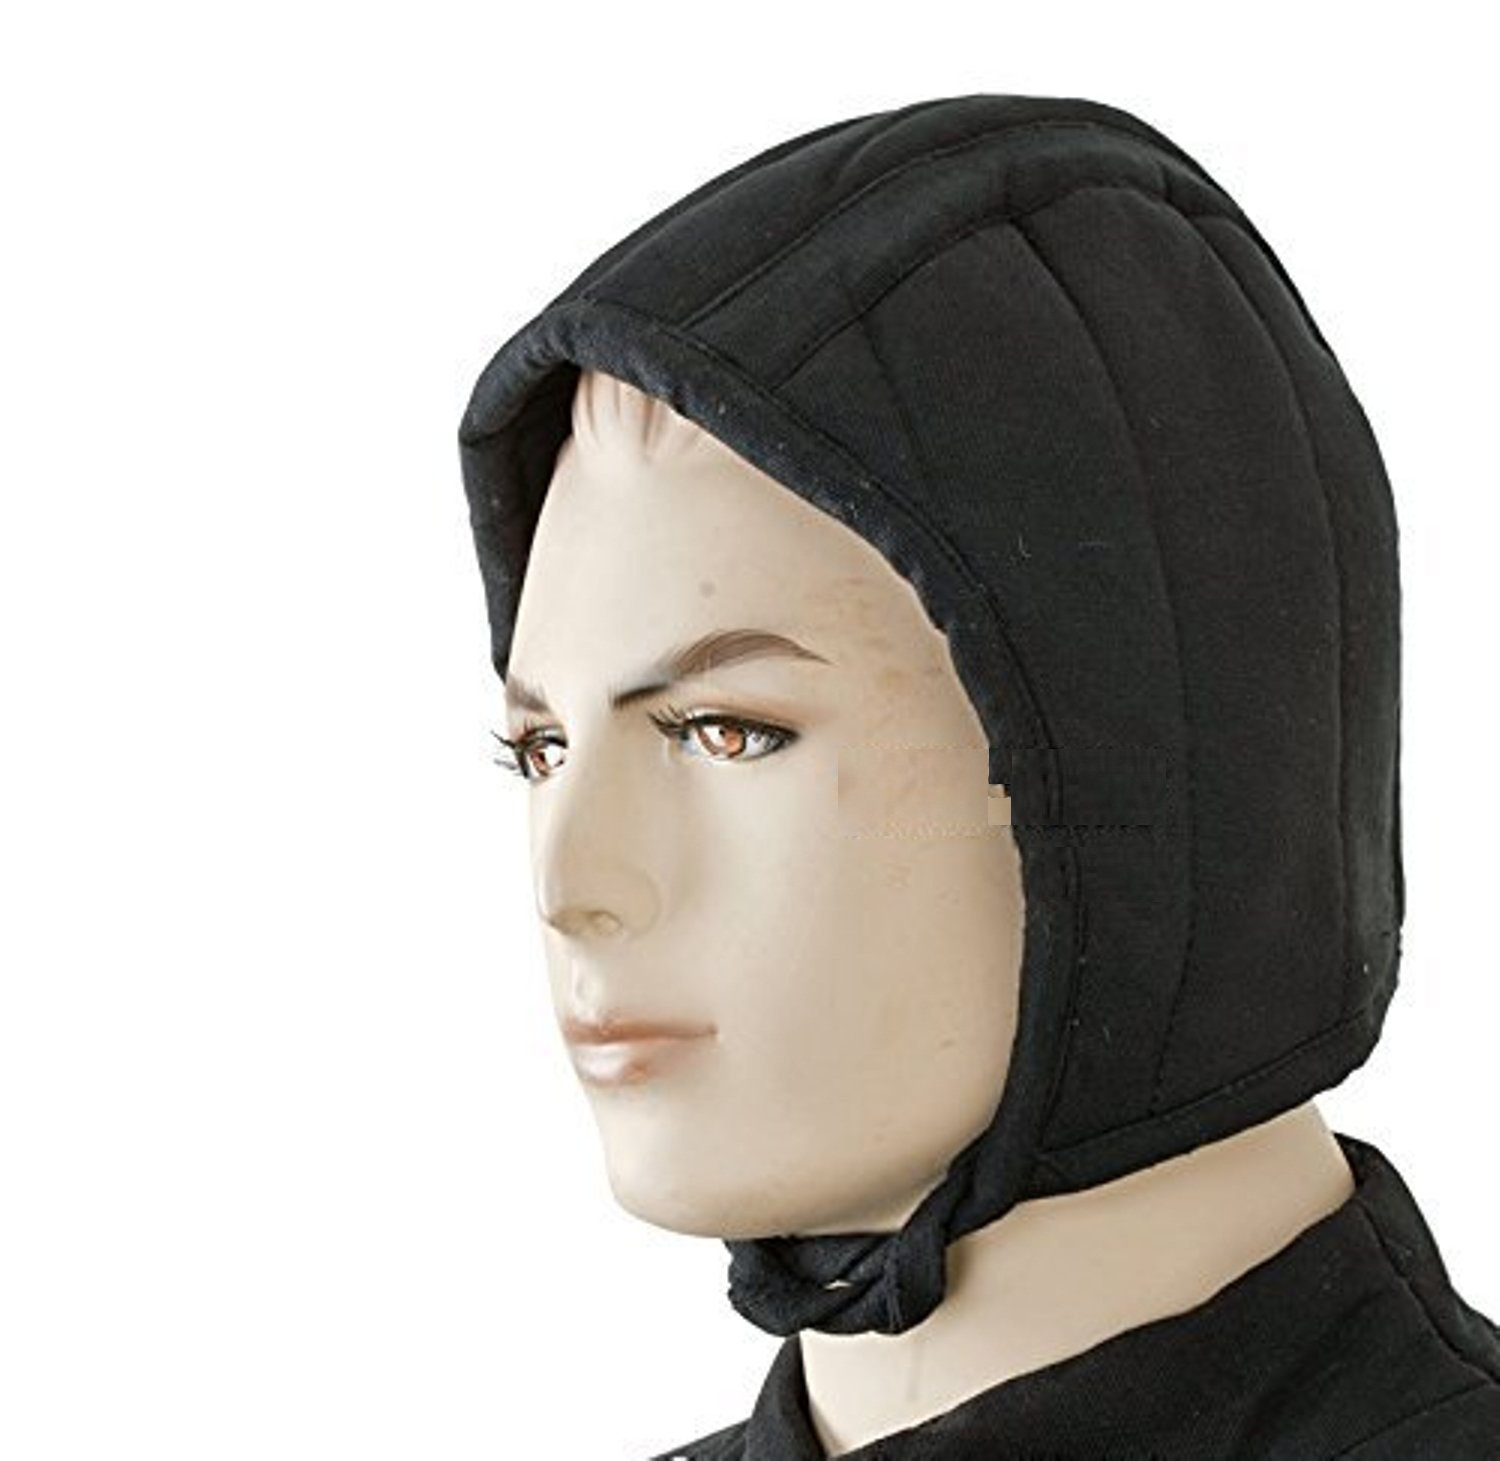 THORINSTRUMENTS (with device) Medieval Gears Brand Black Medieval Renaissance Cotton Padded Arming Cap